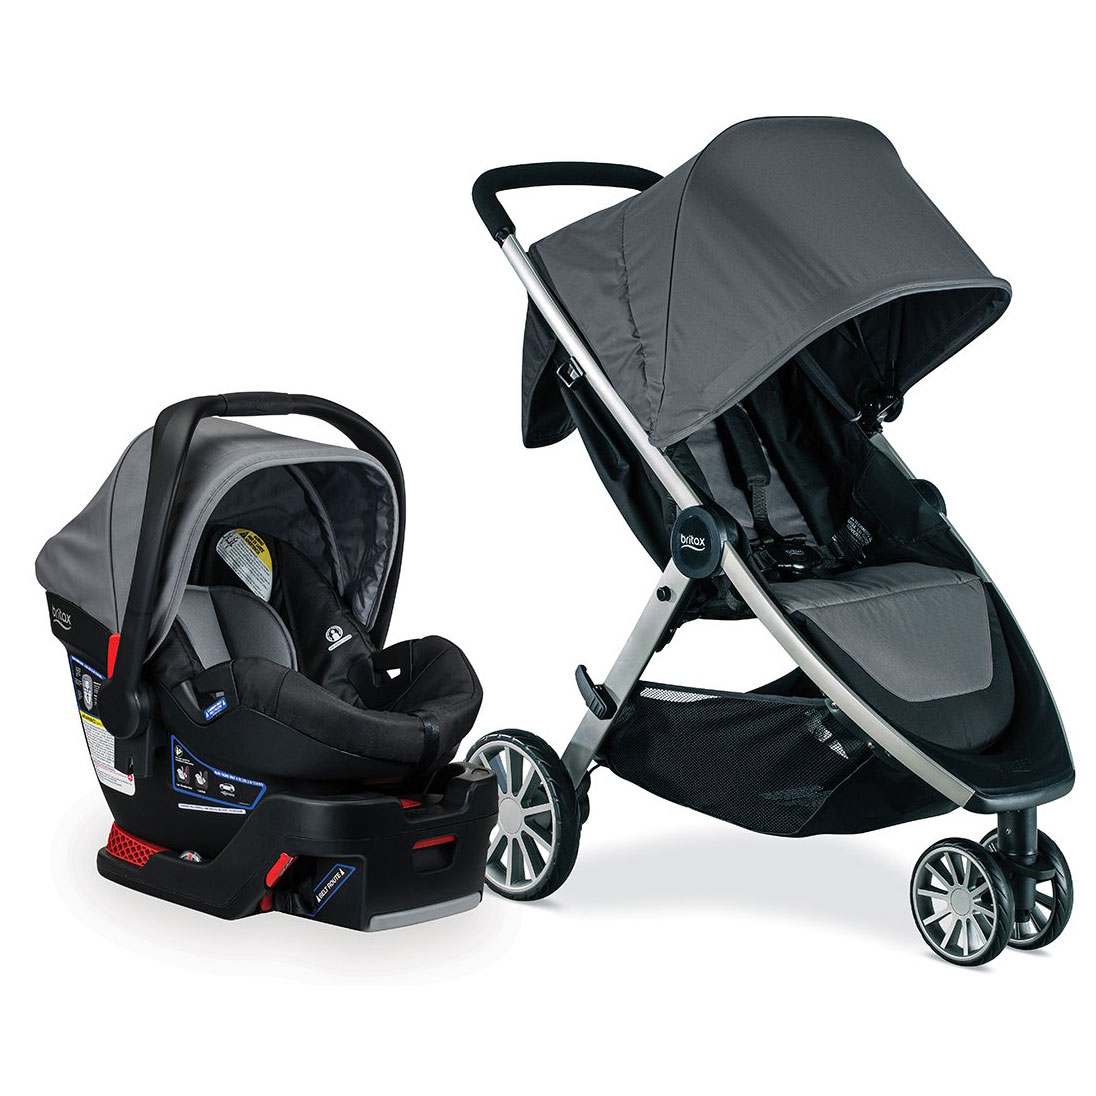 Stroller Travel System Ebay Details About Britax S05587900 B Lively And B Safe Stroller And Car Seat Travel System Dove